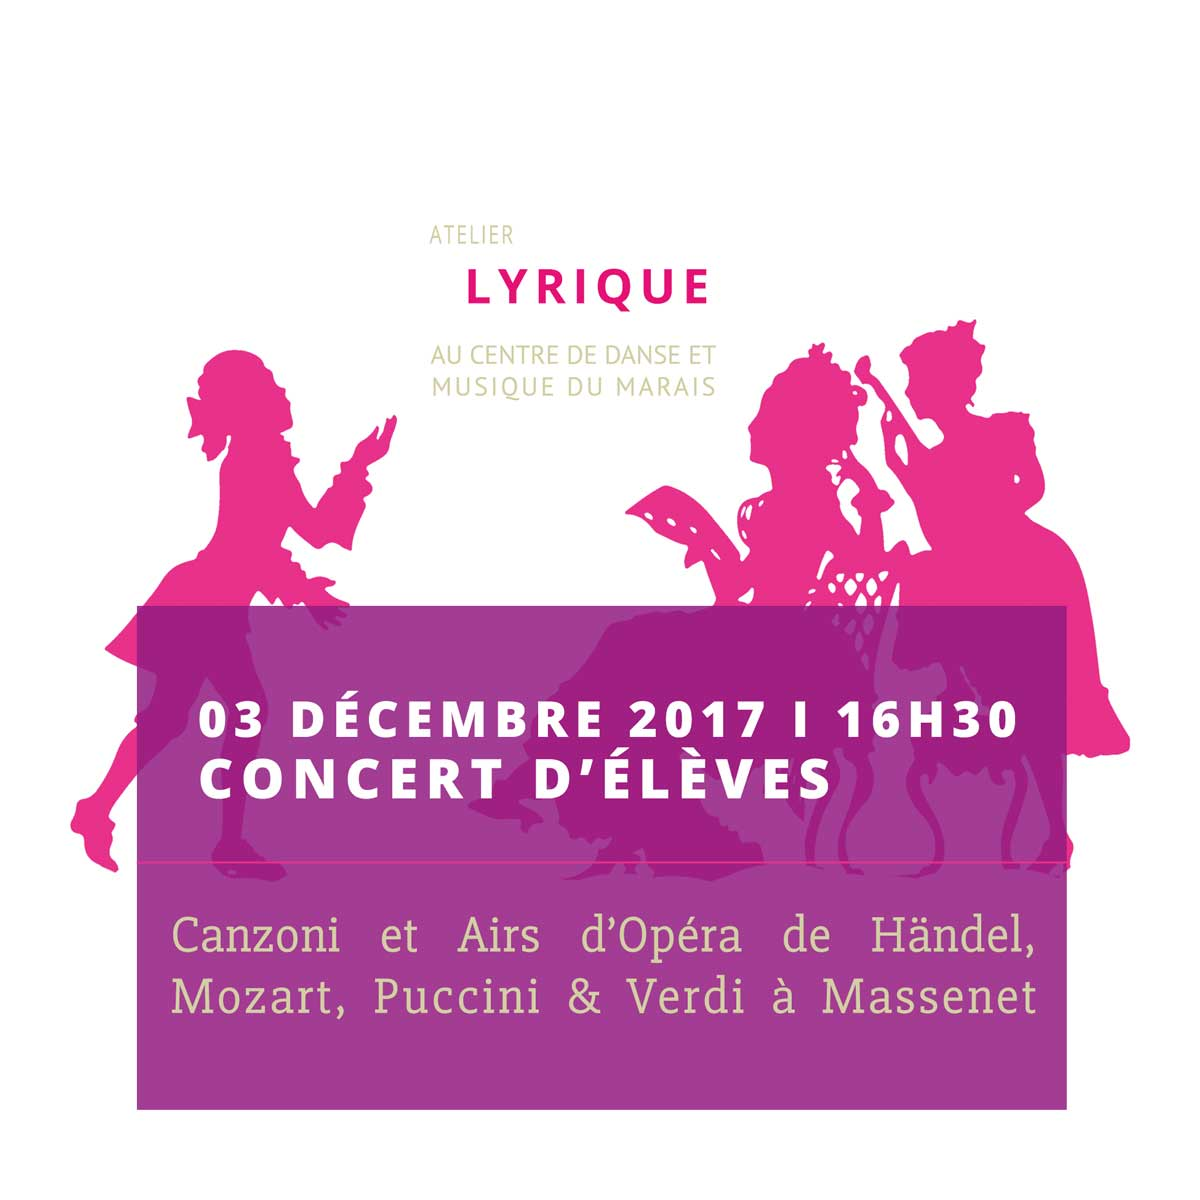 carre-programme_concert_atelier_lyrique_03_dec_modele